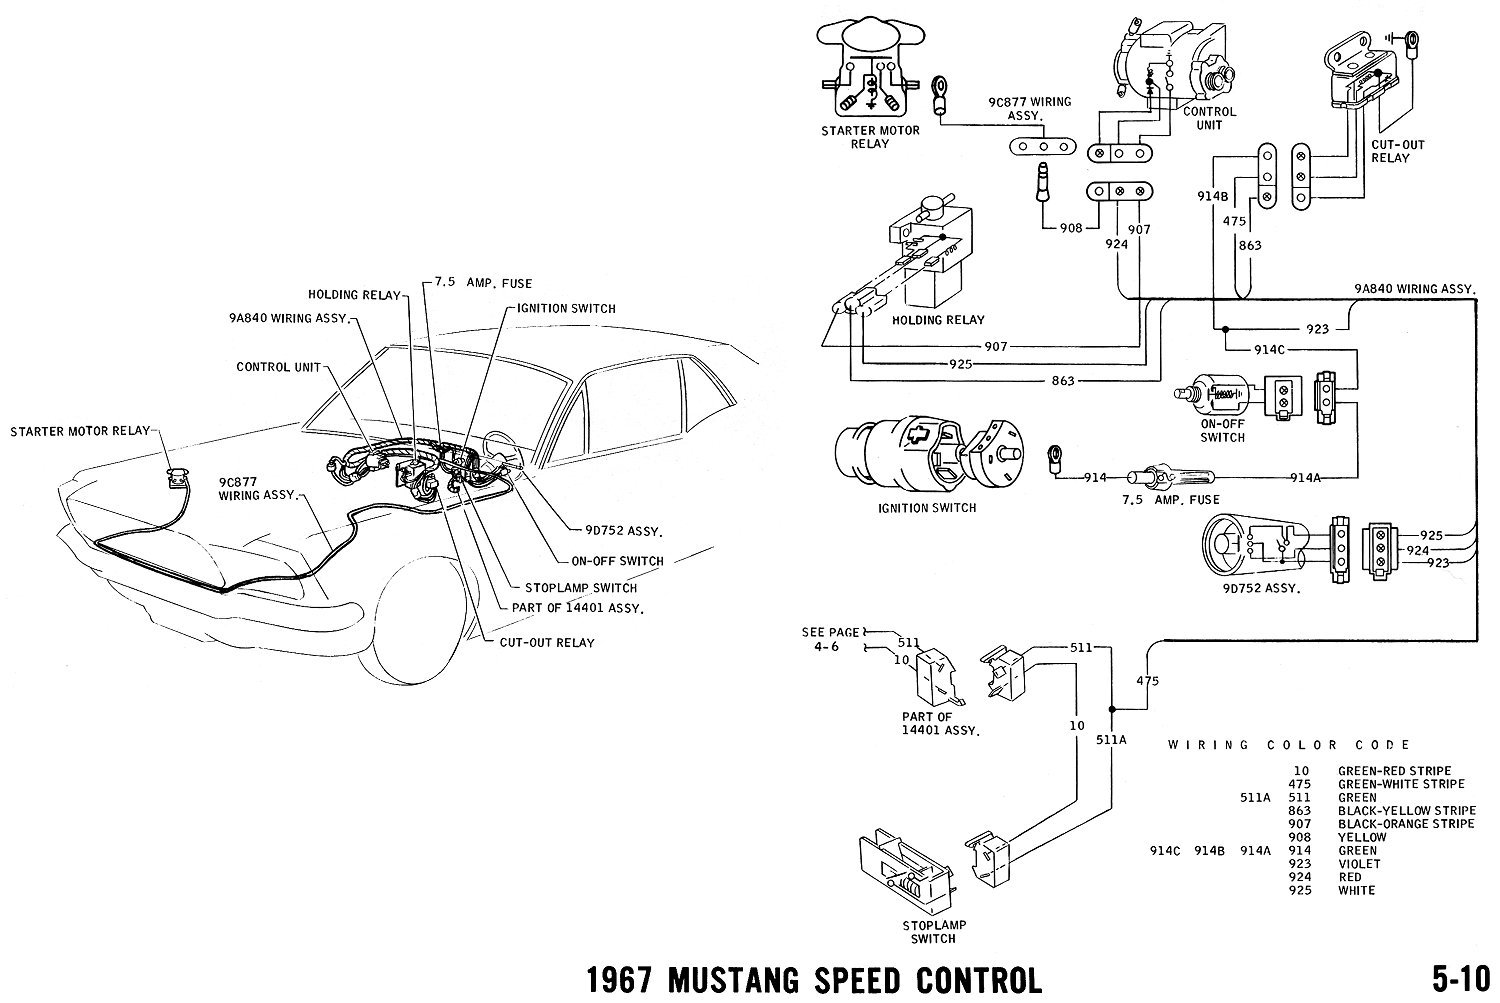 1967 Mustang Wiring And Vacuum Diagrams on 1966 mustang radio wiring diagram